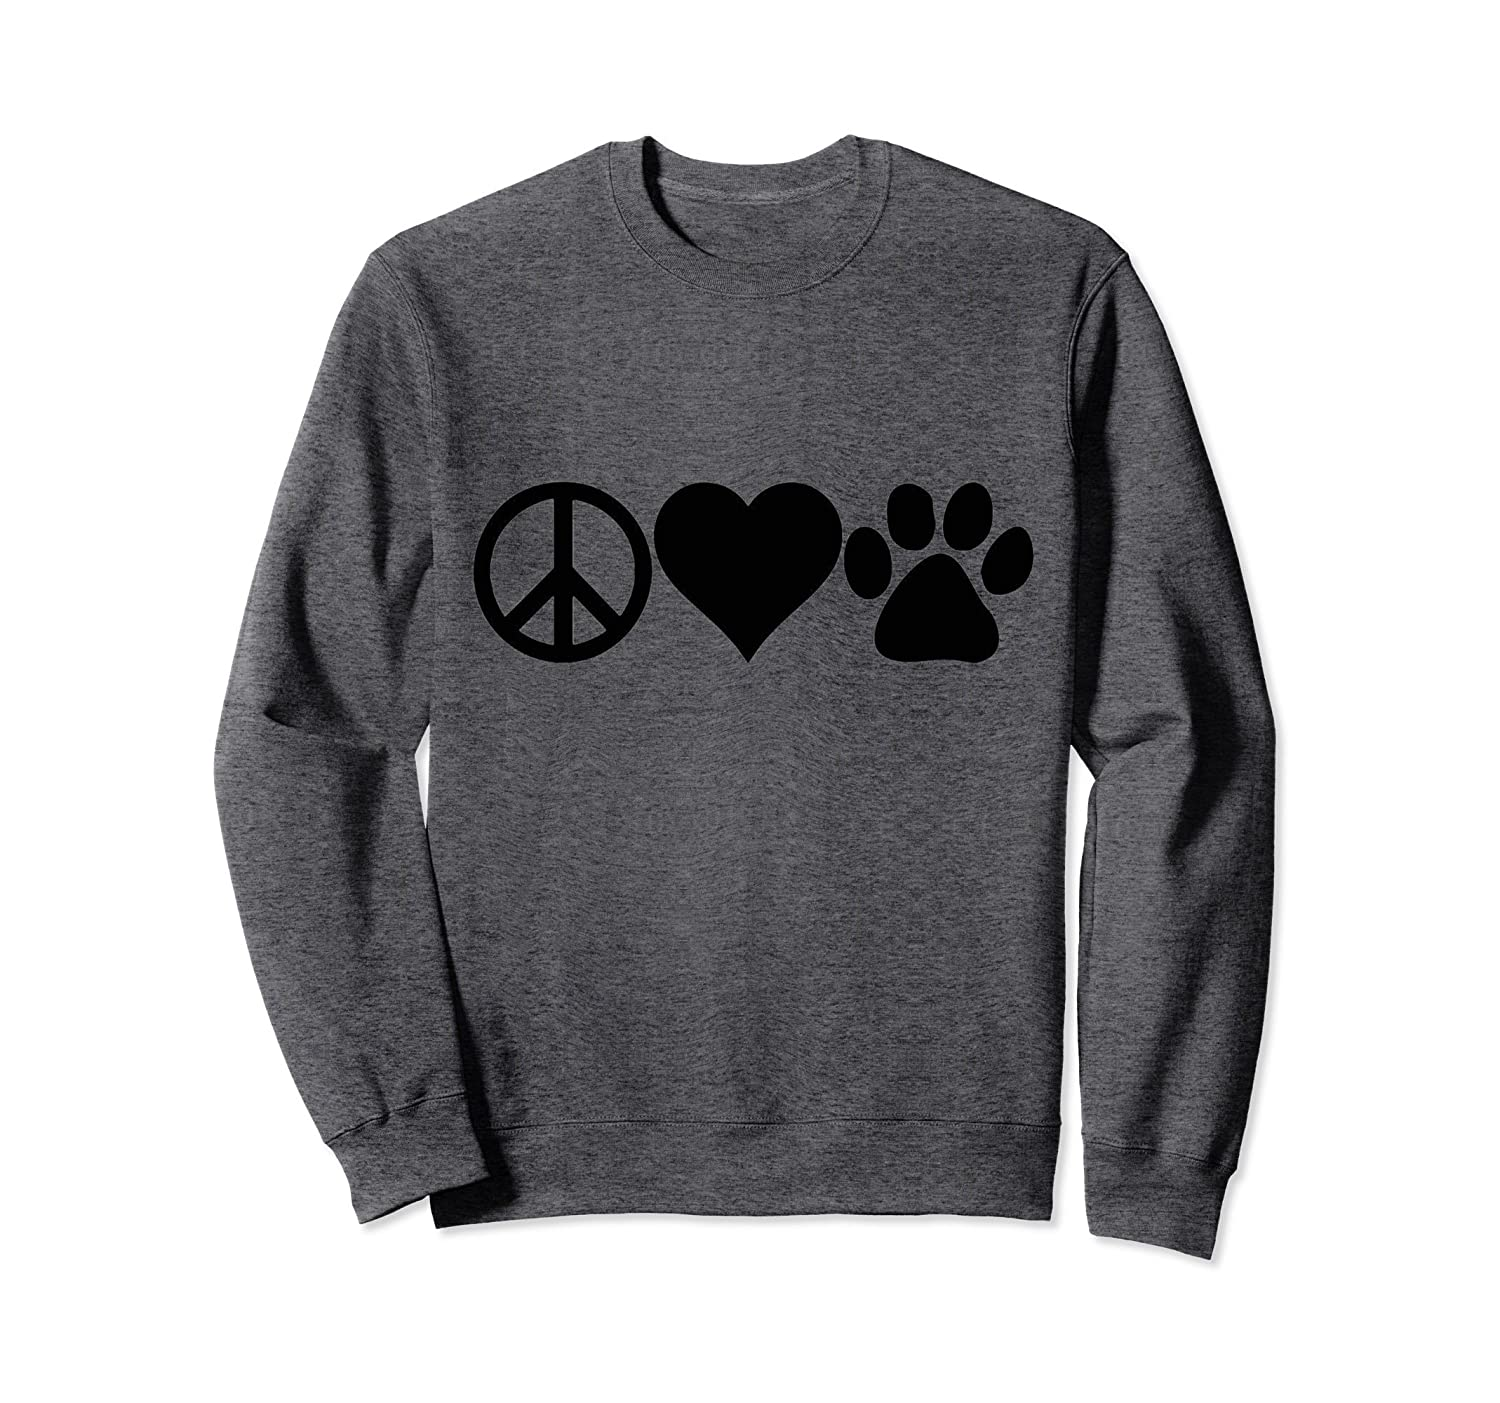 Peace Love Paws Sweatshirt for Girls,Boys,Teens, Men & Women-alottee gift